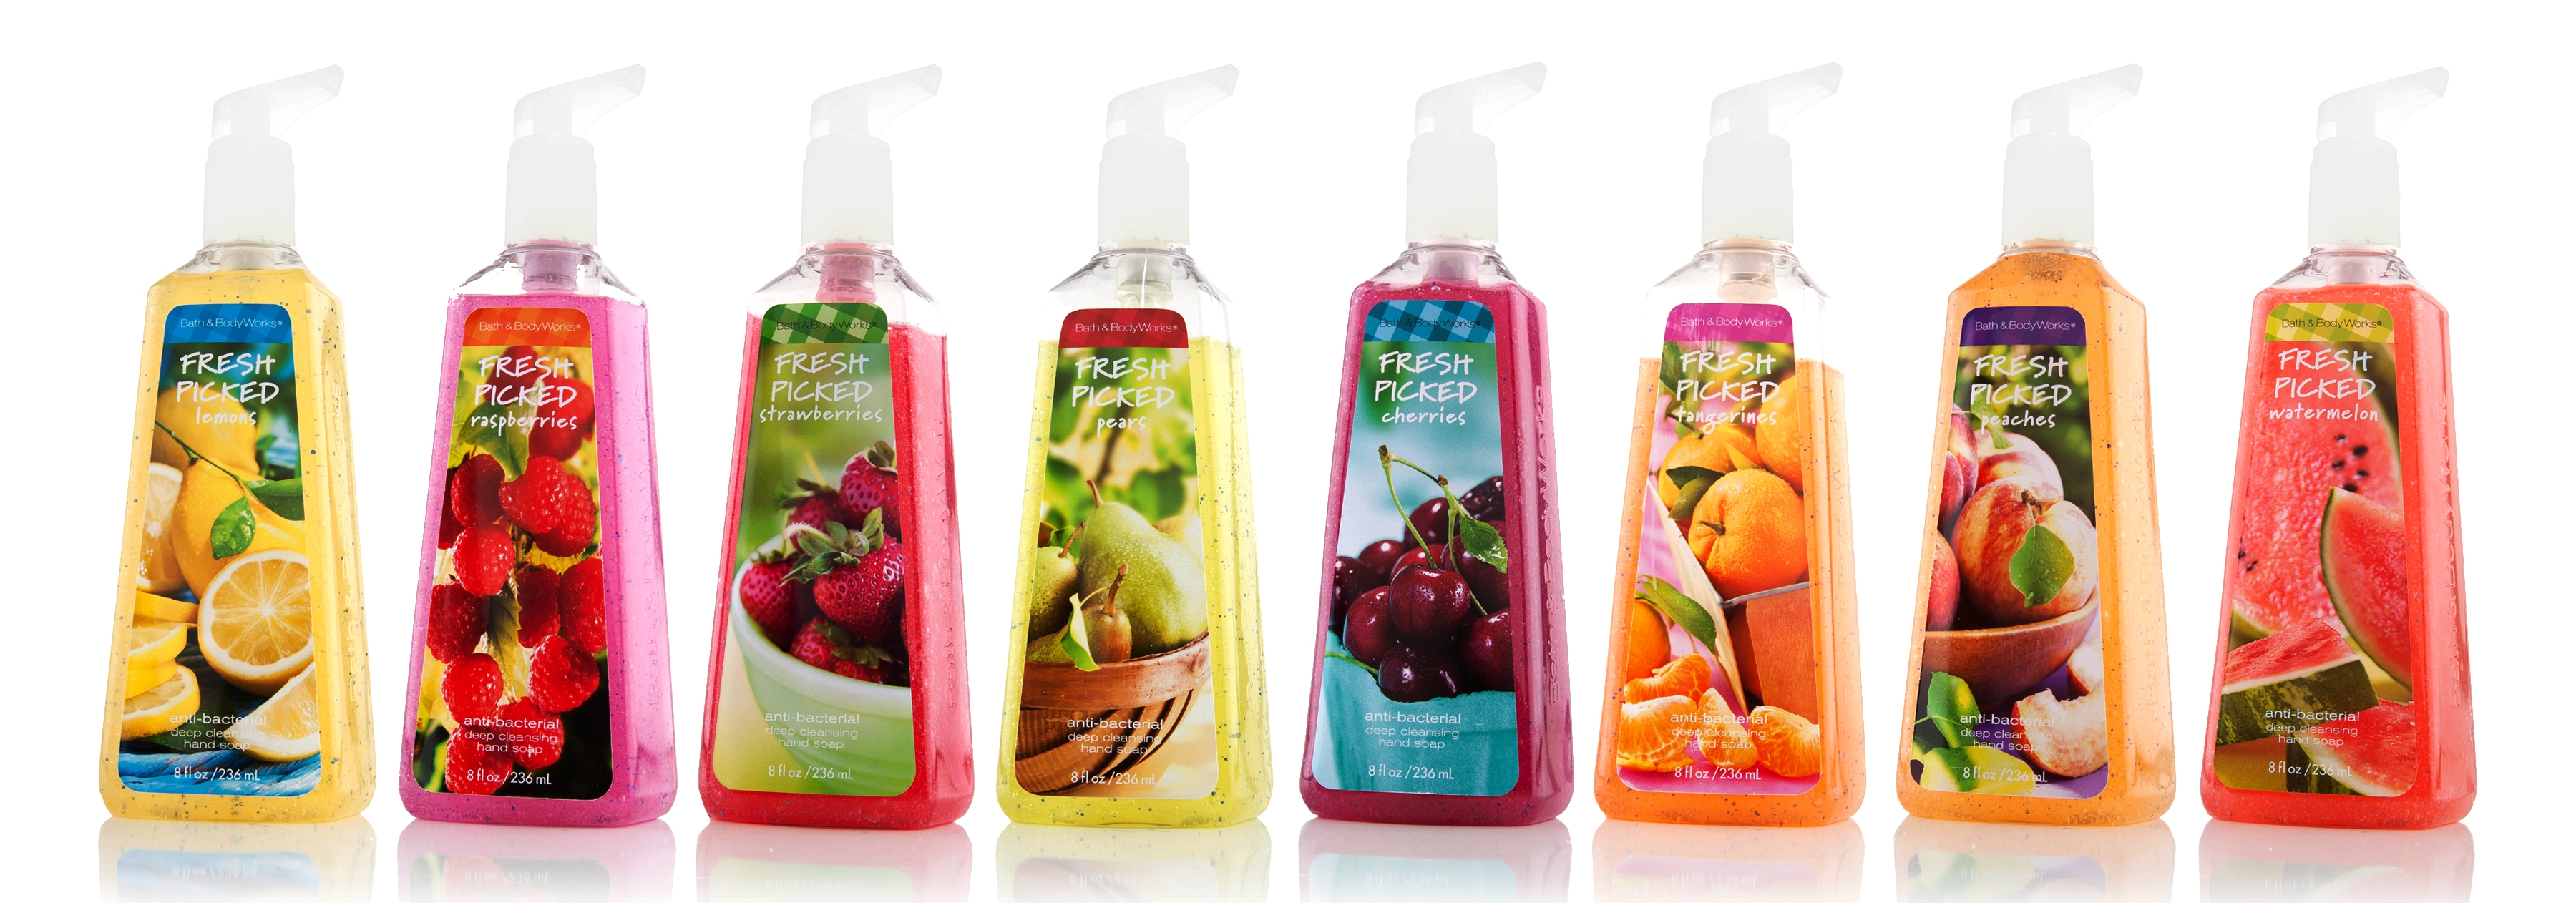 Bath body works fresh picked party march 17 2012 my for Bathroom body works